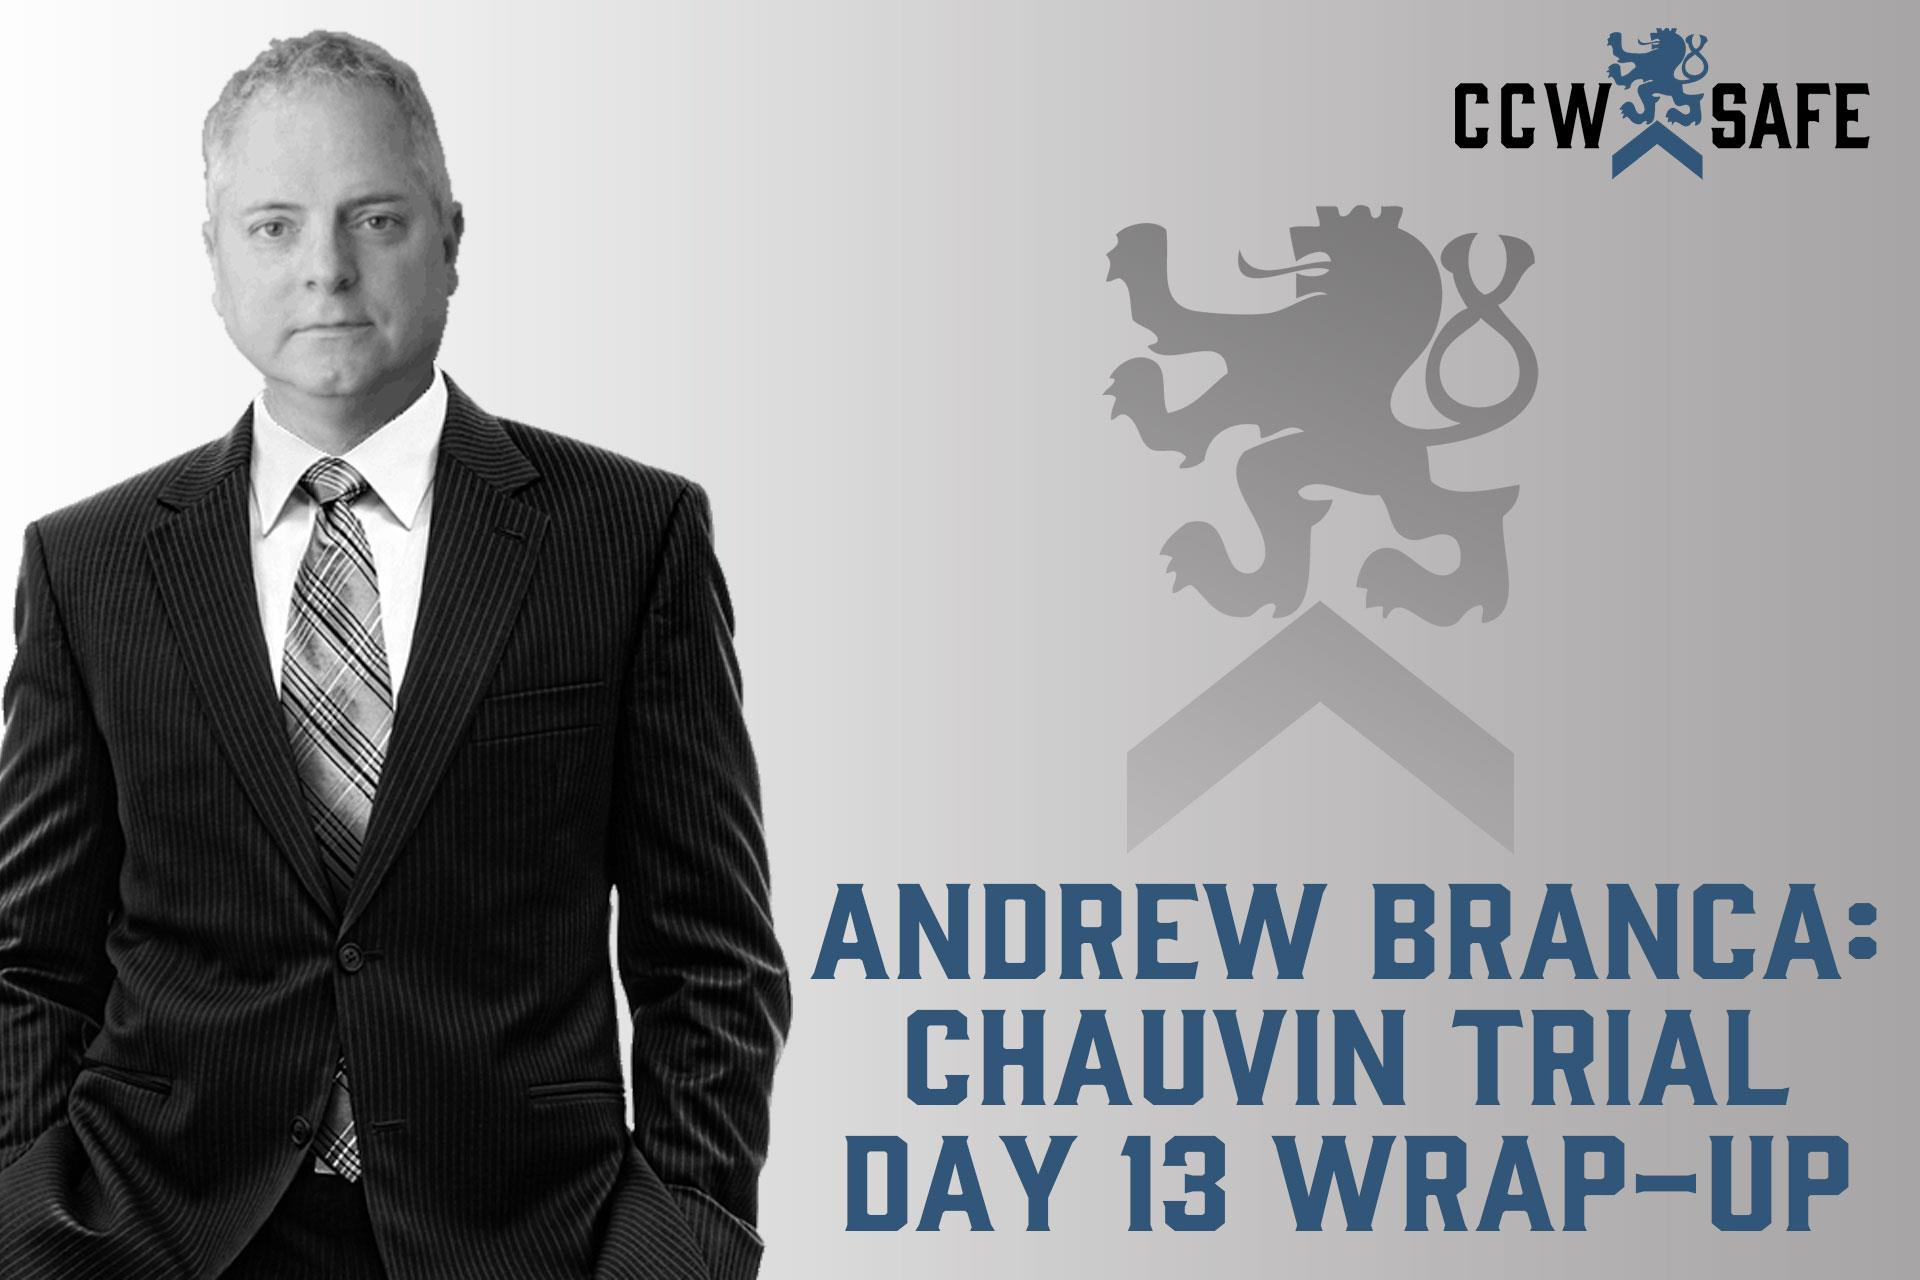 Andrew Branca: Chauvin Trial Day 13 Wrap-Up